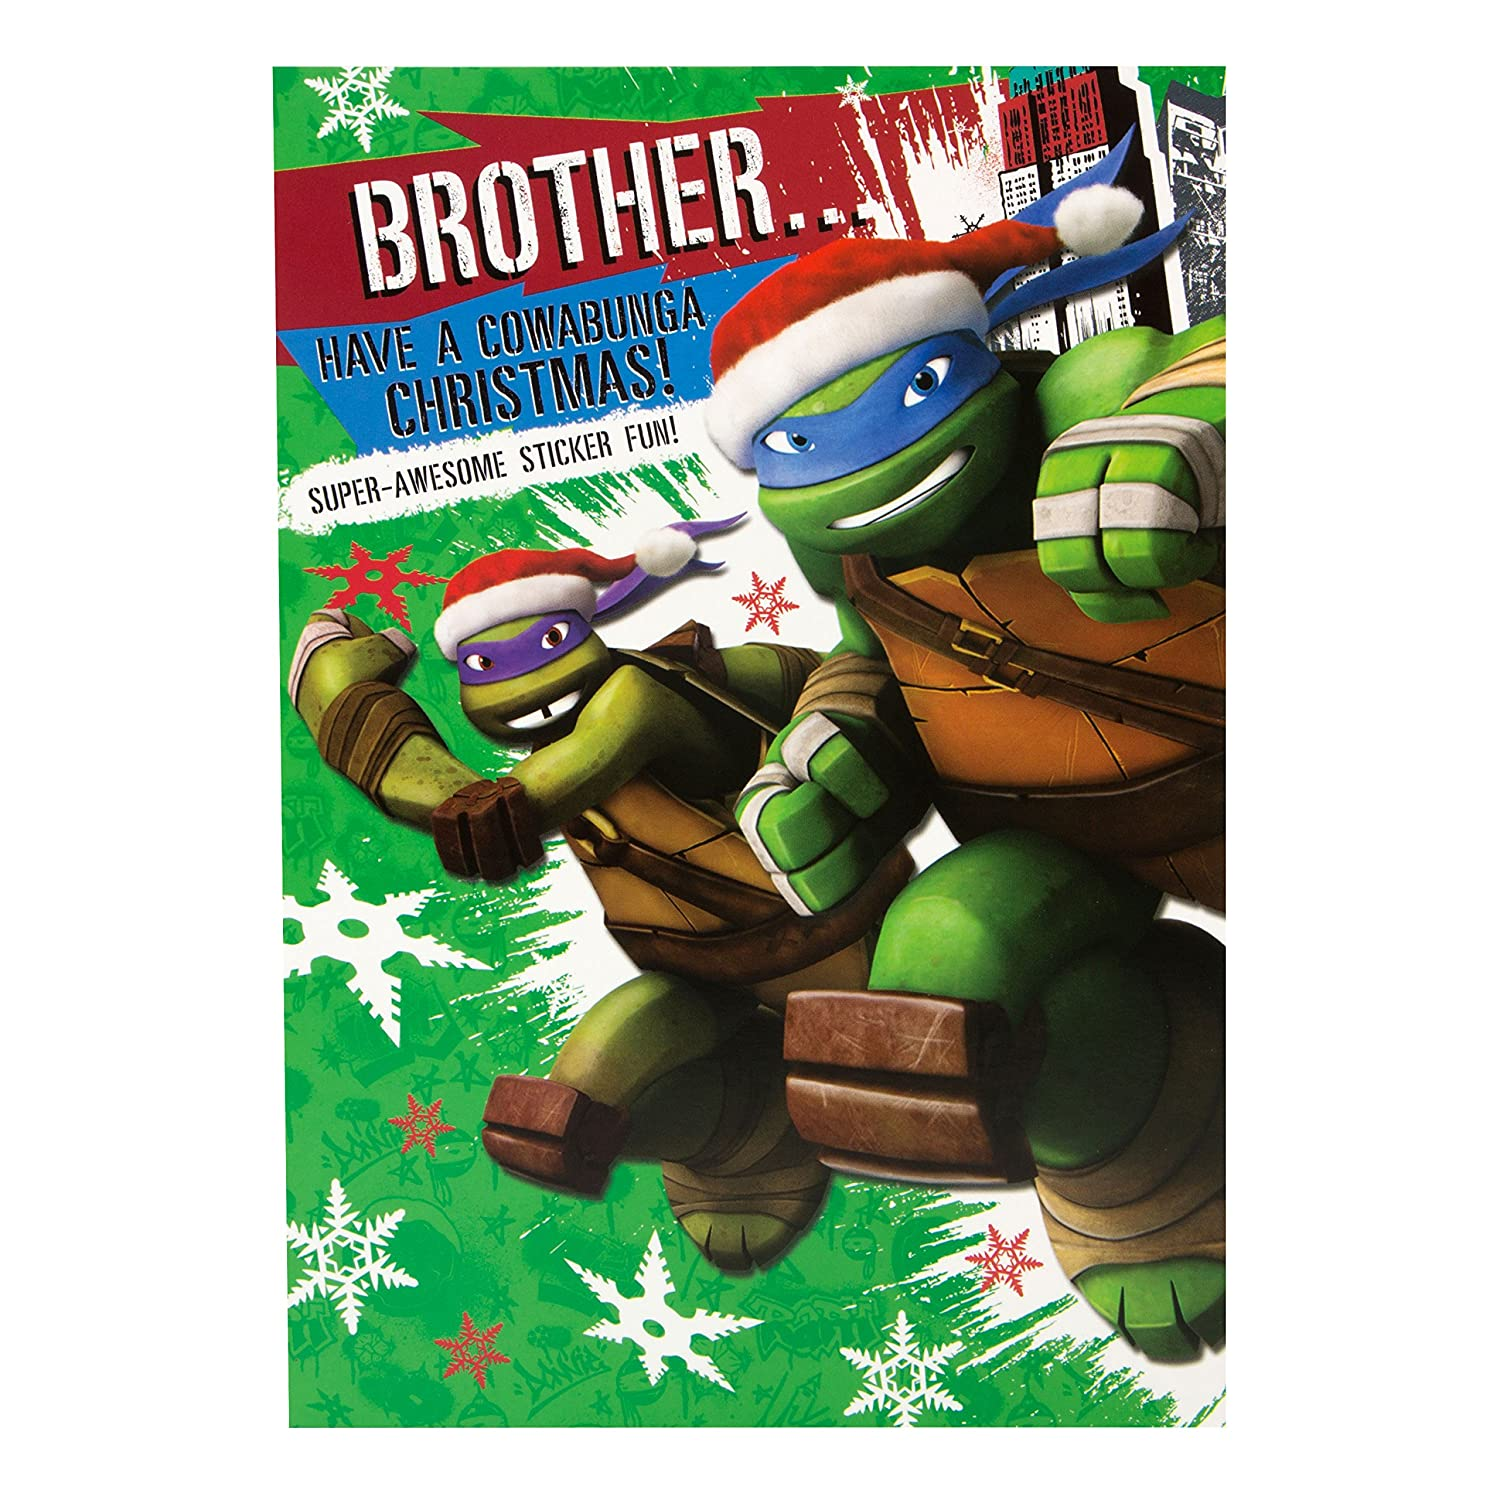 Hallmark Teenage Mutant Ninja Turtles Christmas Card To Brother ...